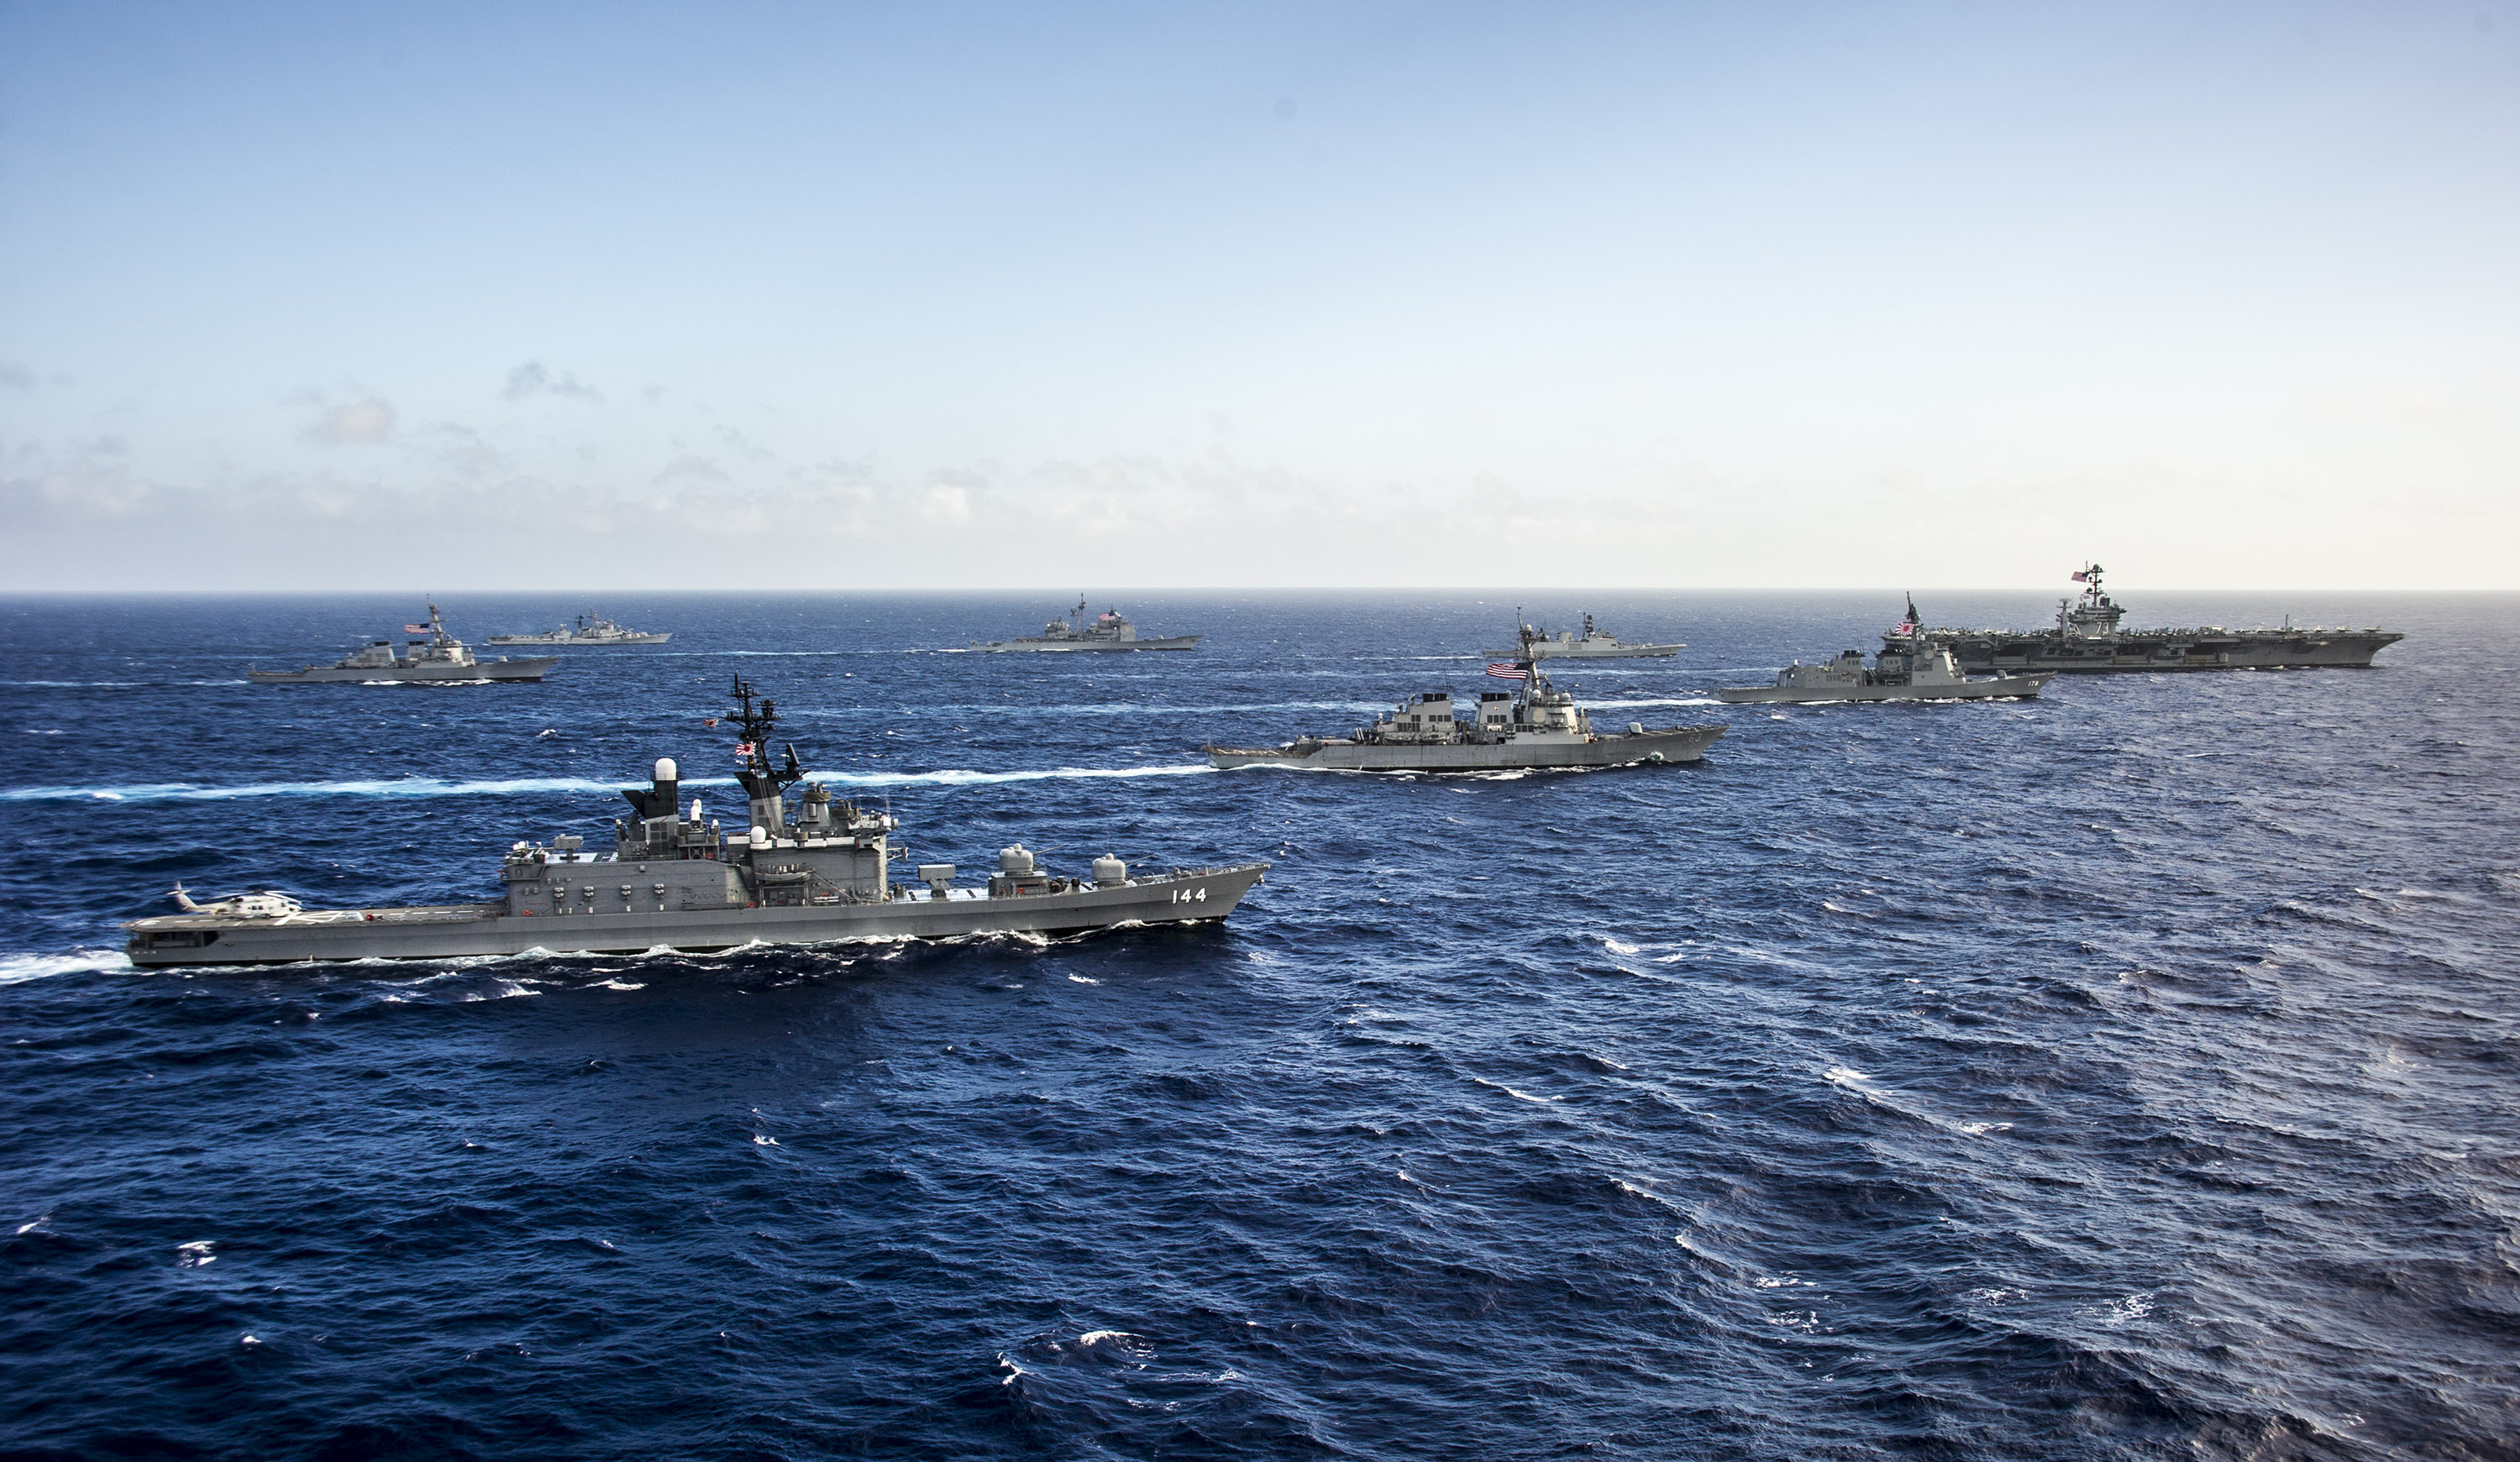 U.S. Pacific Fleet in waters East of Okinawa (July 30, 2014) via Flickr Commons